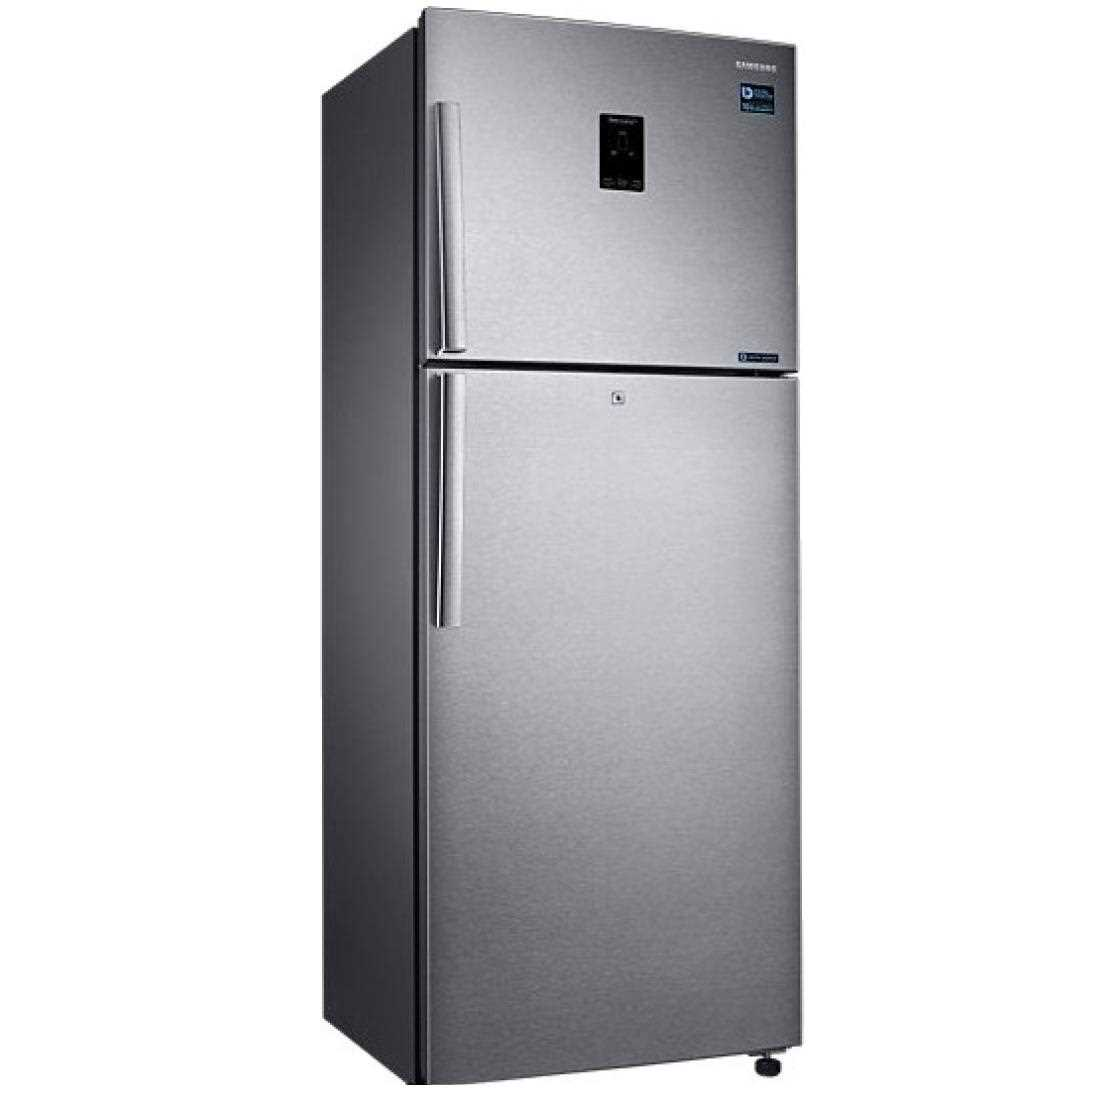 samsung fridge. samsung rt42k5468sl double door 415 litres frost free refrigerator price {25 nov 2017} | reviews and specifications fridge e